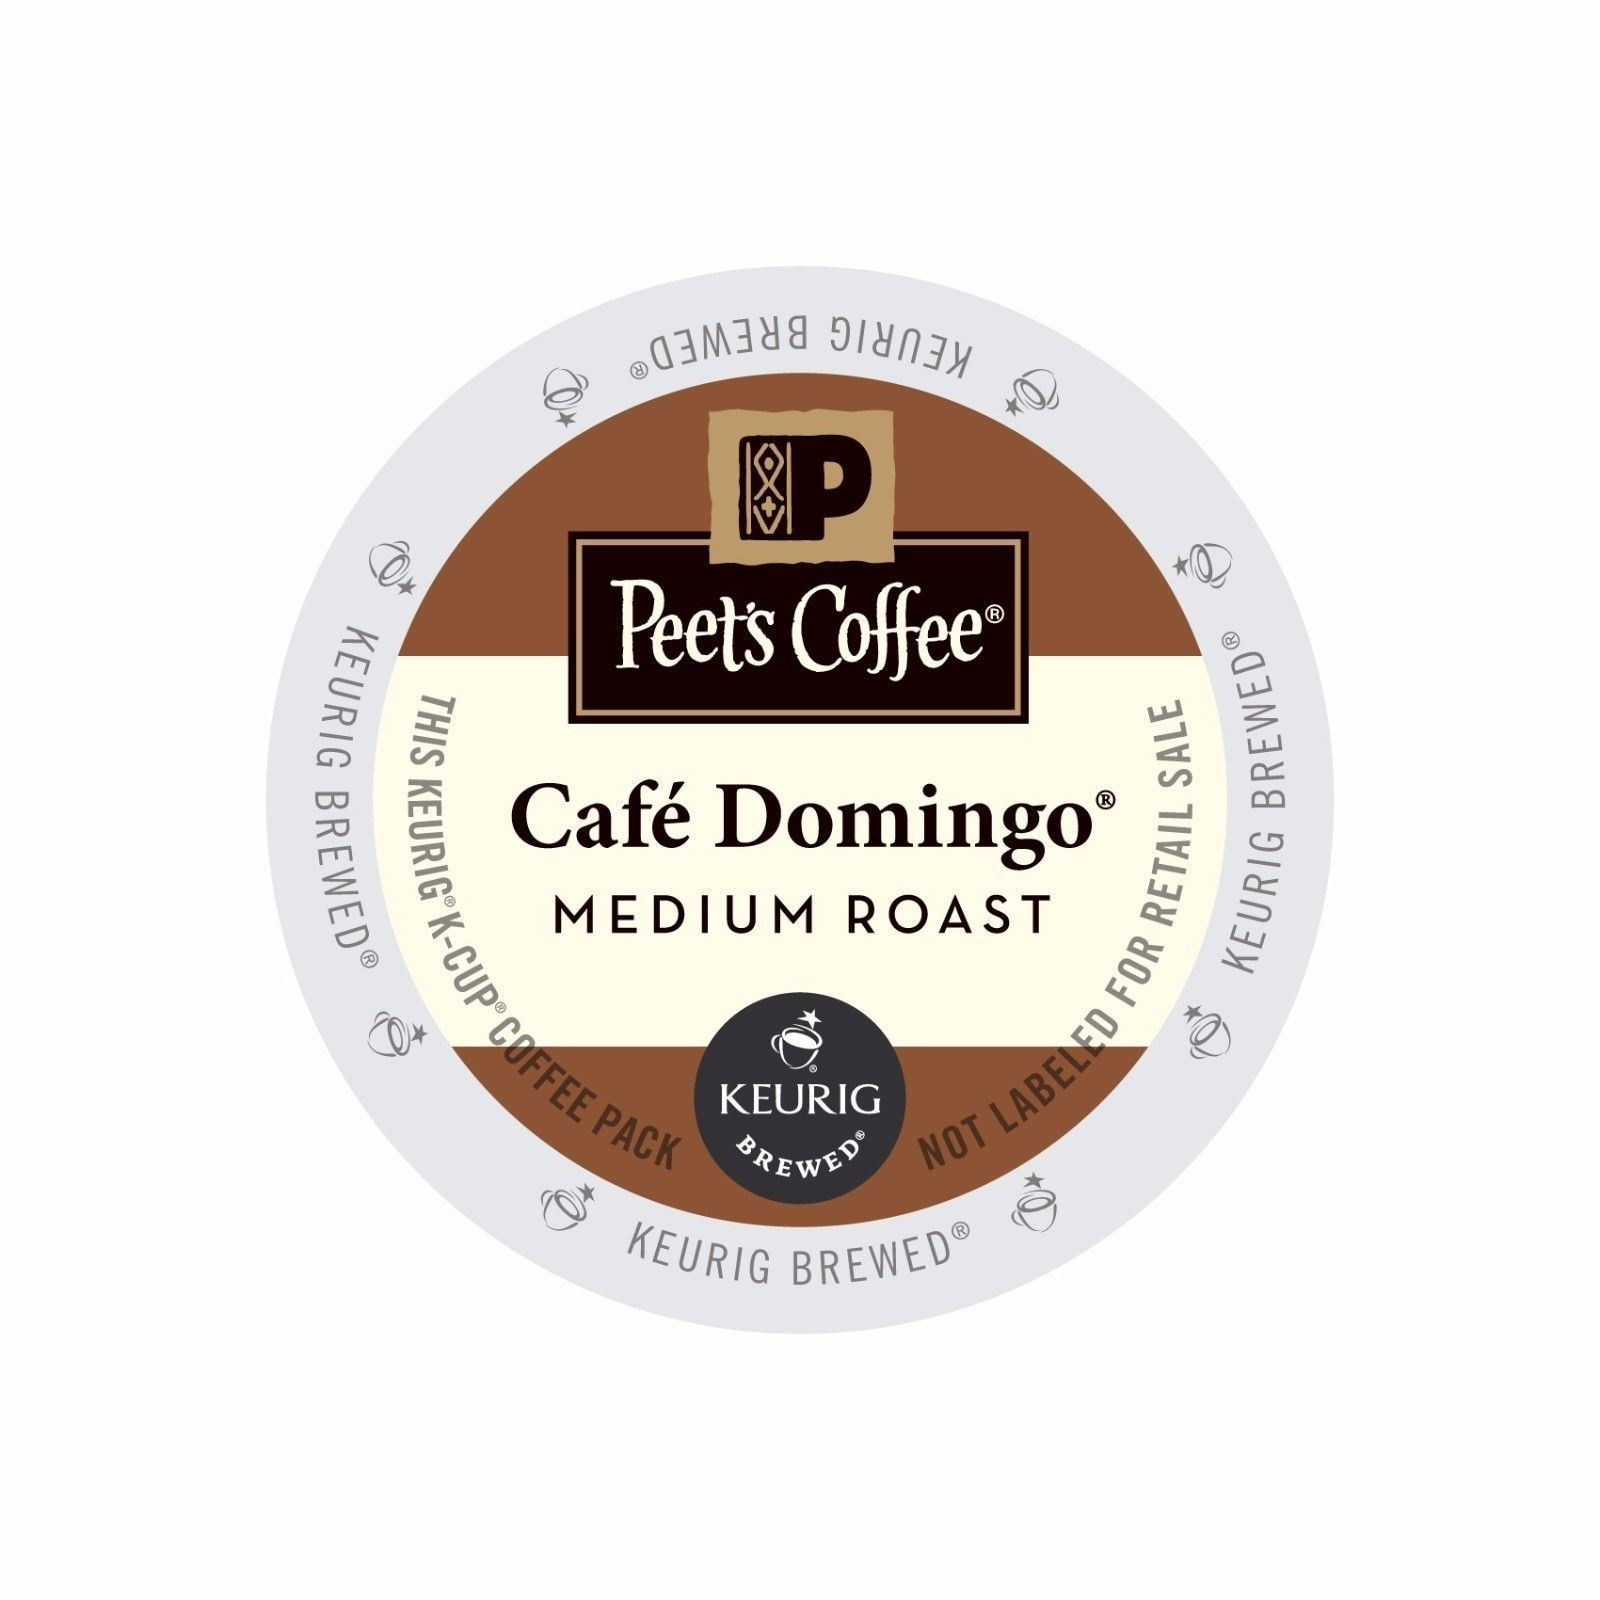 Peet's Coffee Cafe Domingo Coffee, 66 count Kcups, FREE SHIPPING